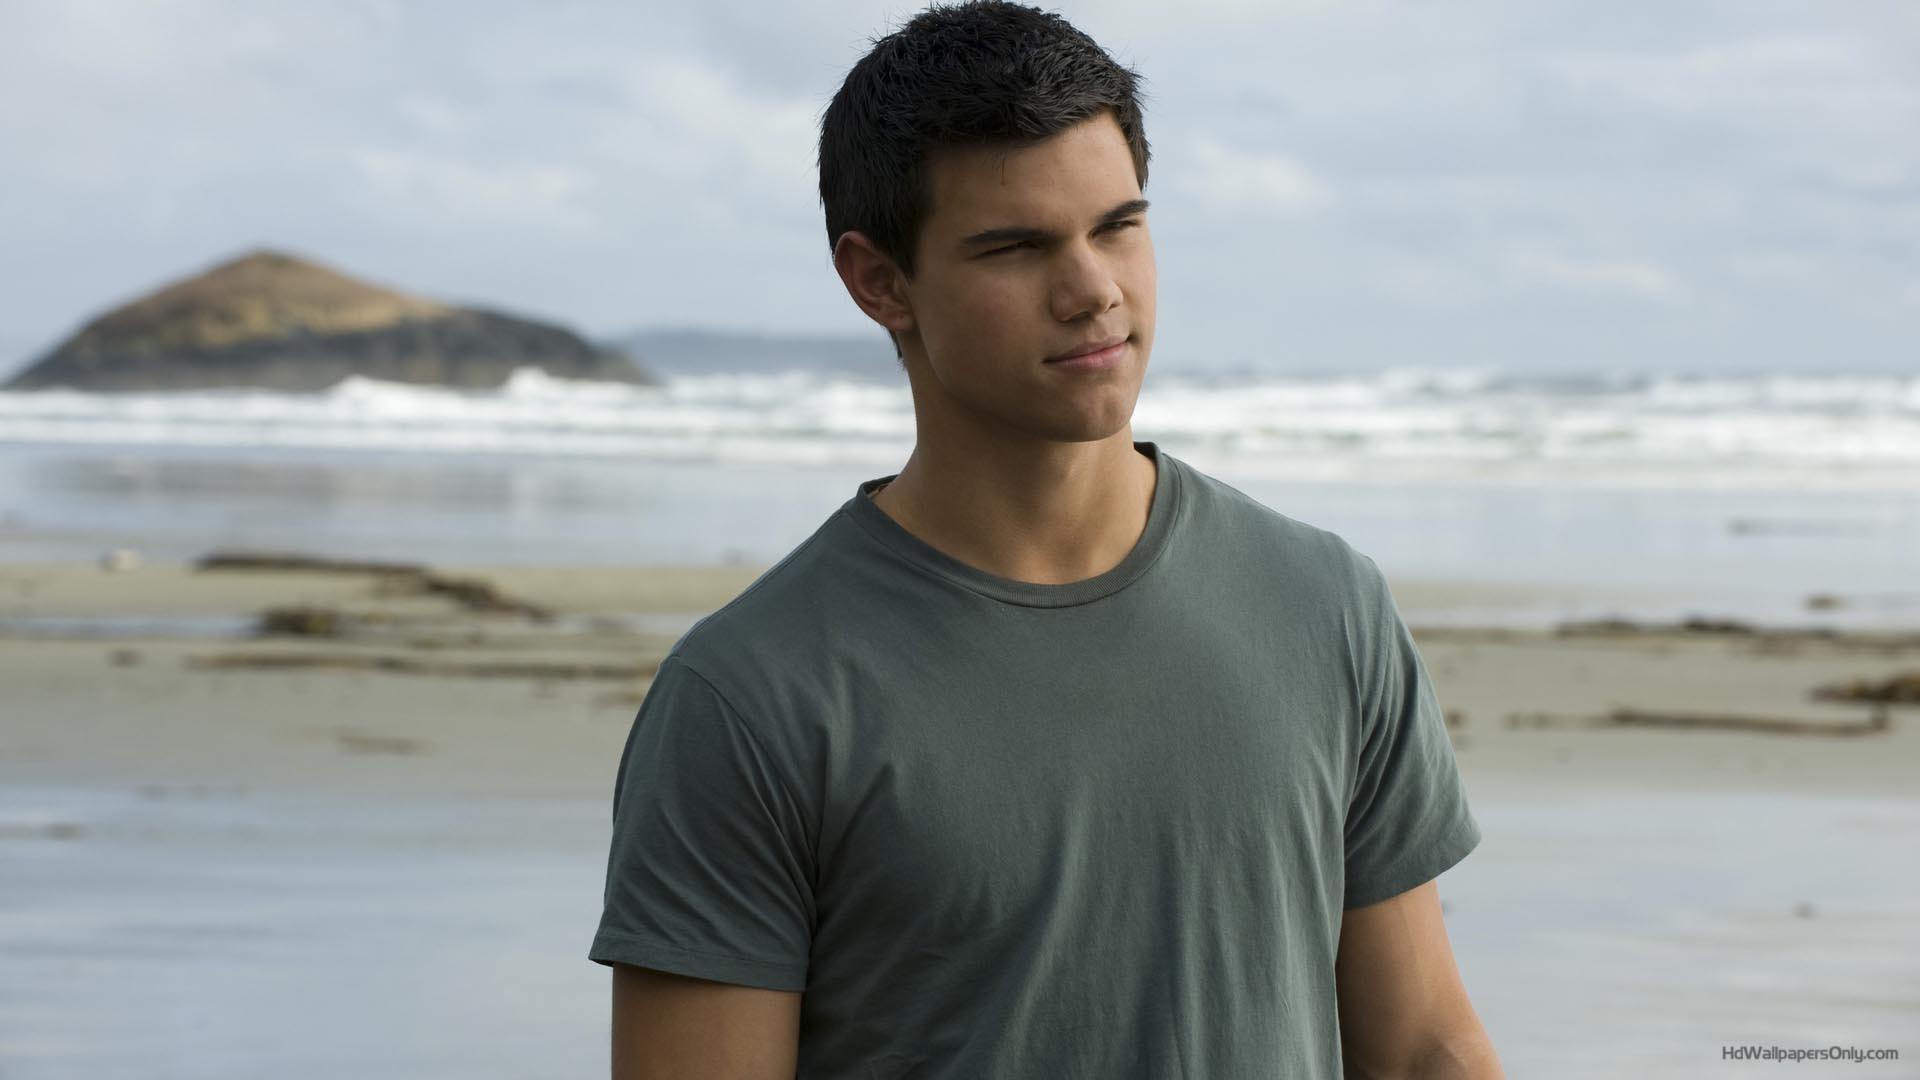 1920x1080 HD Wallpapers of Taylor Lautner and Taylor Lautner HD pictures are  available for free download for